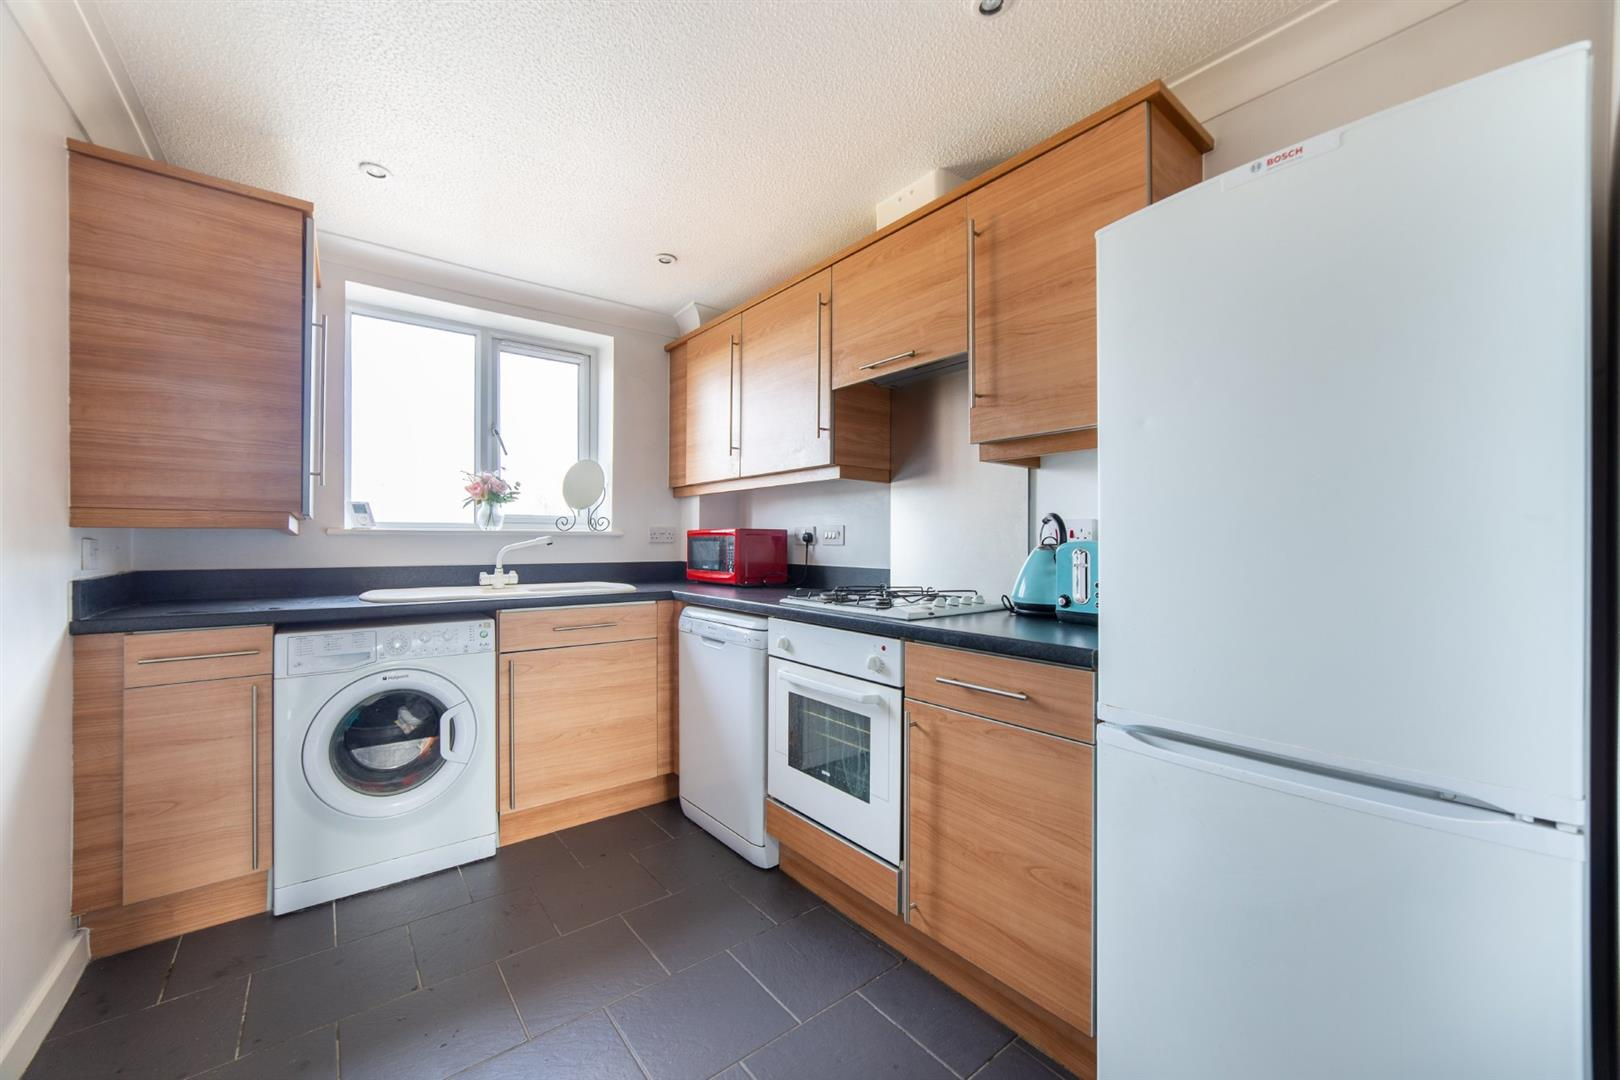 2 bed apartment for sale in Newcastle Upon Tyne, NE6 5BJ  - Property Image 3